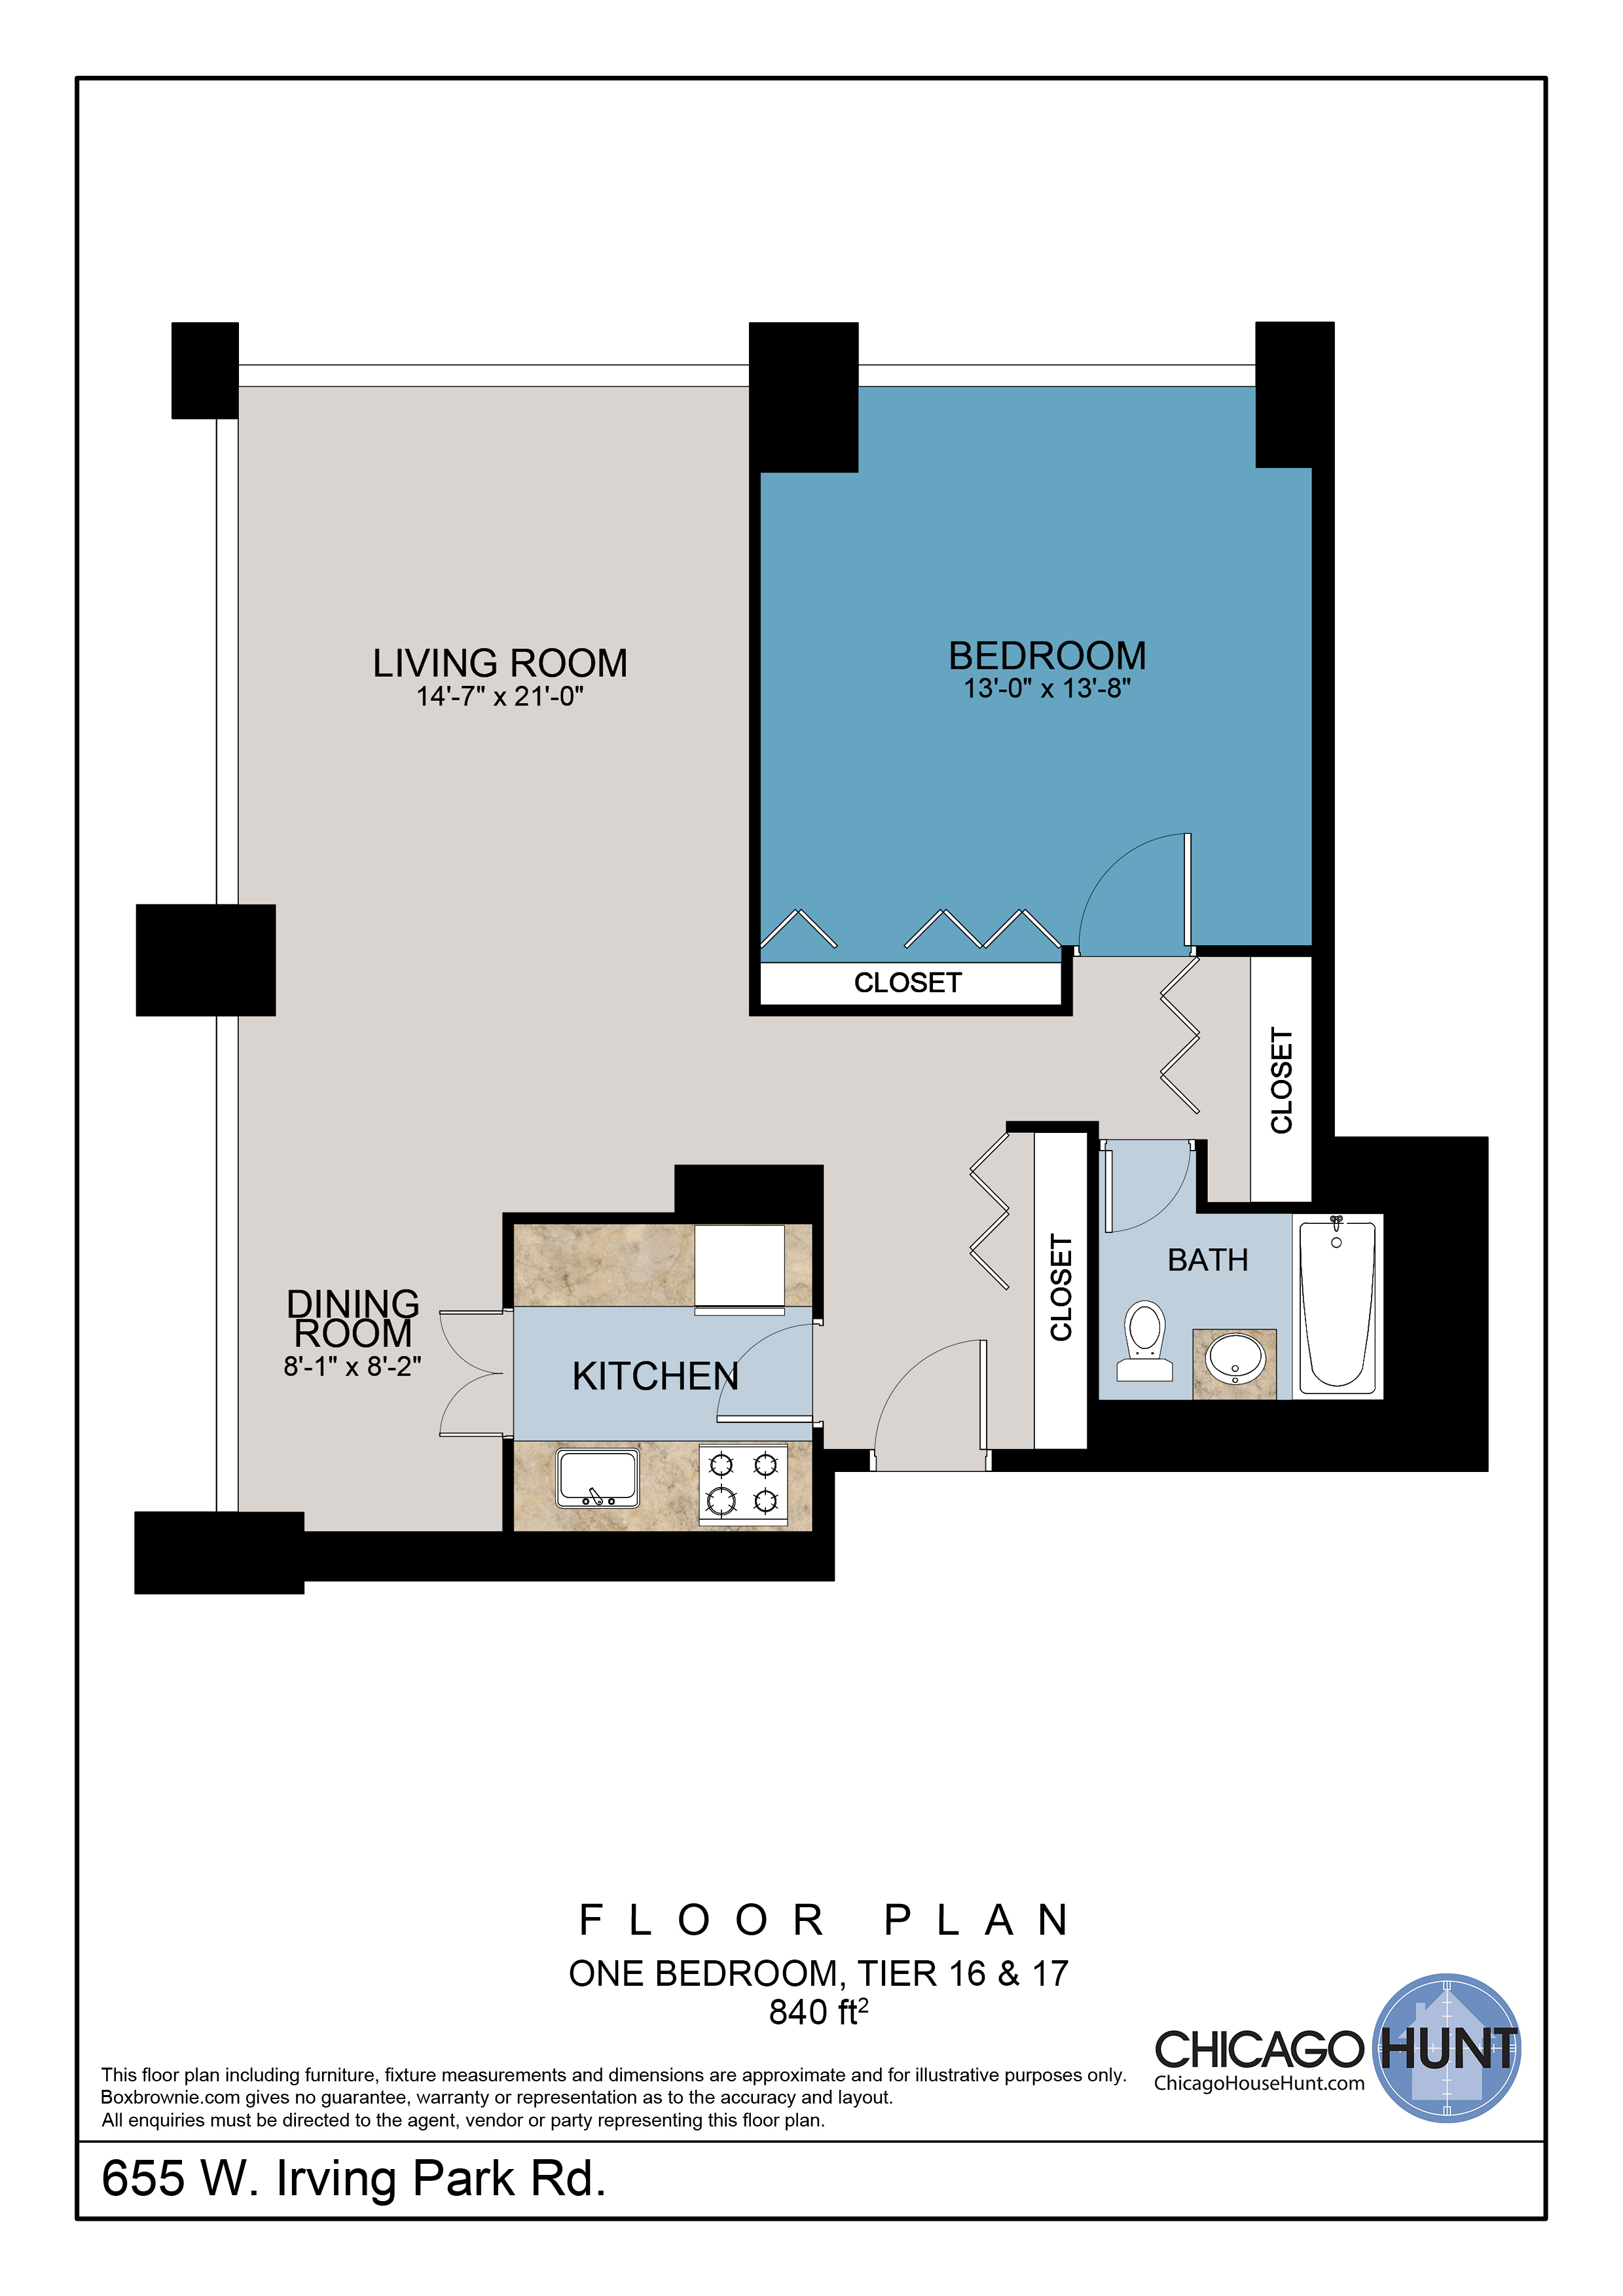 655 Irving Park, Park Place Towere - Floor Plan - Tier 16 & 17